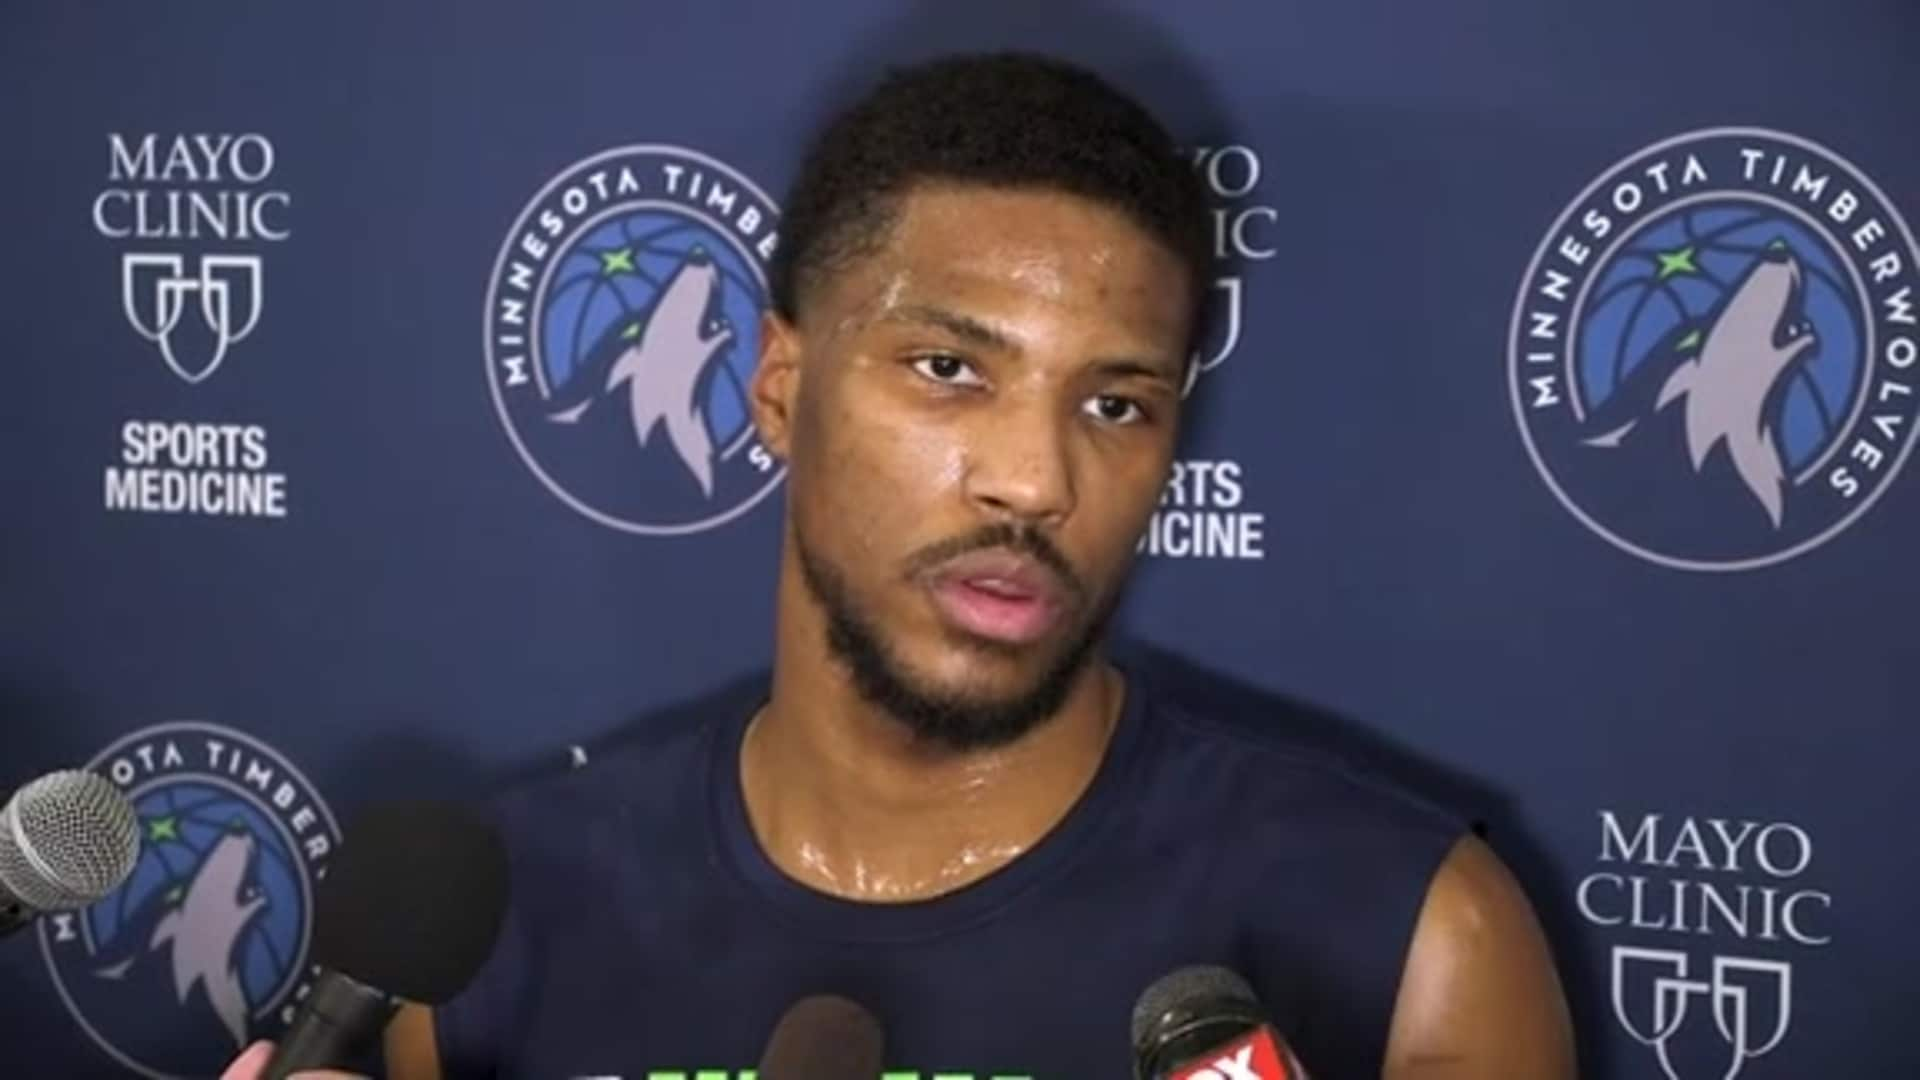 Timberwolves Guard Malik Beasley On Expectations For Remainder Of 2019-20 Season (2.19.20)